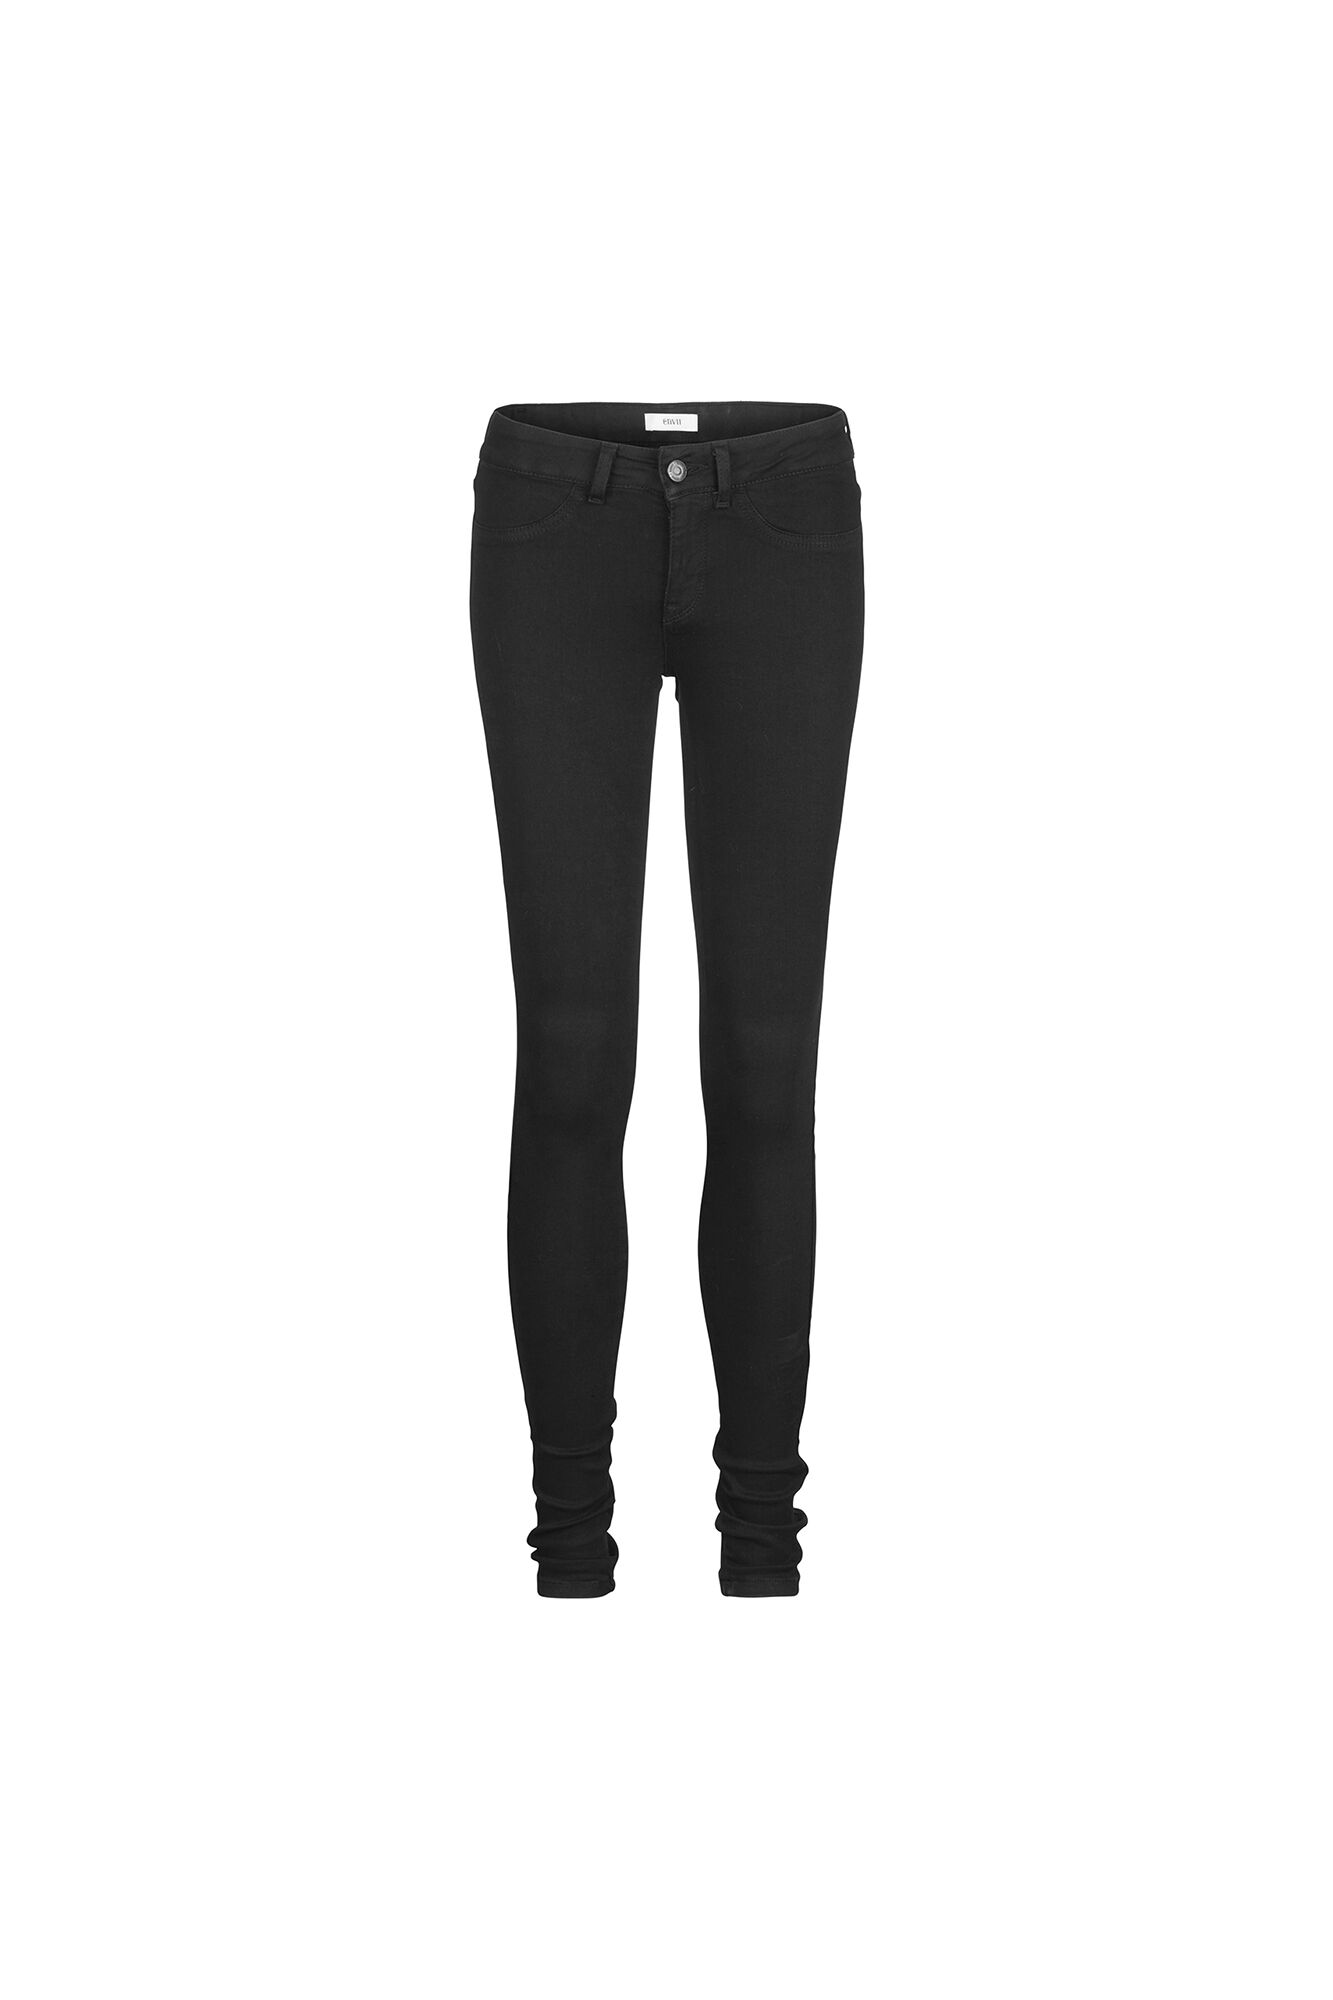 ENBLAIR JEANS BLACK 6421